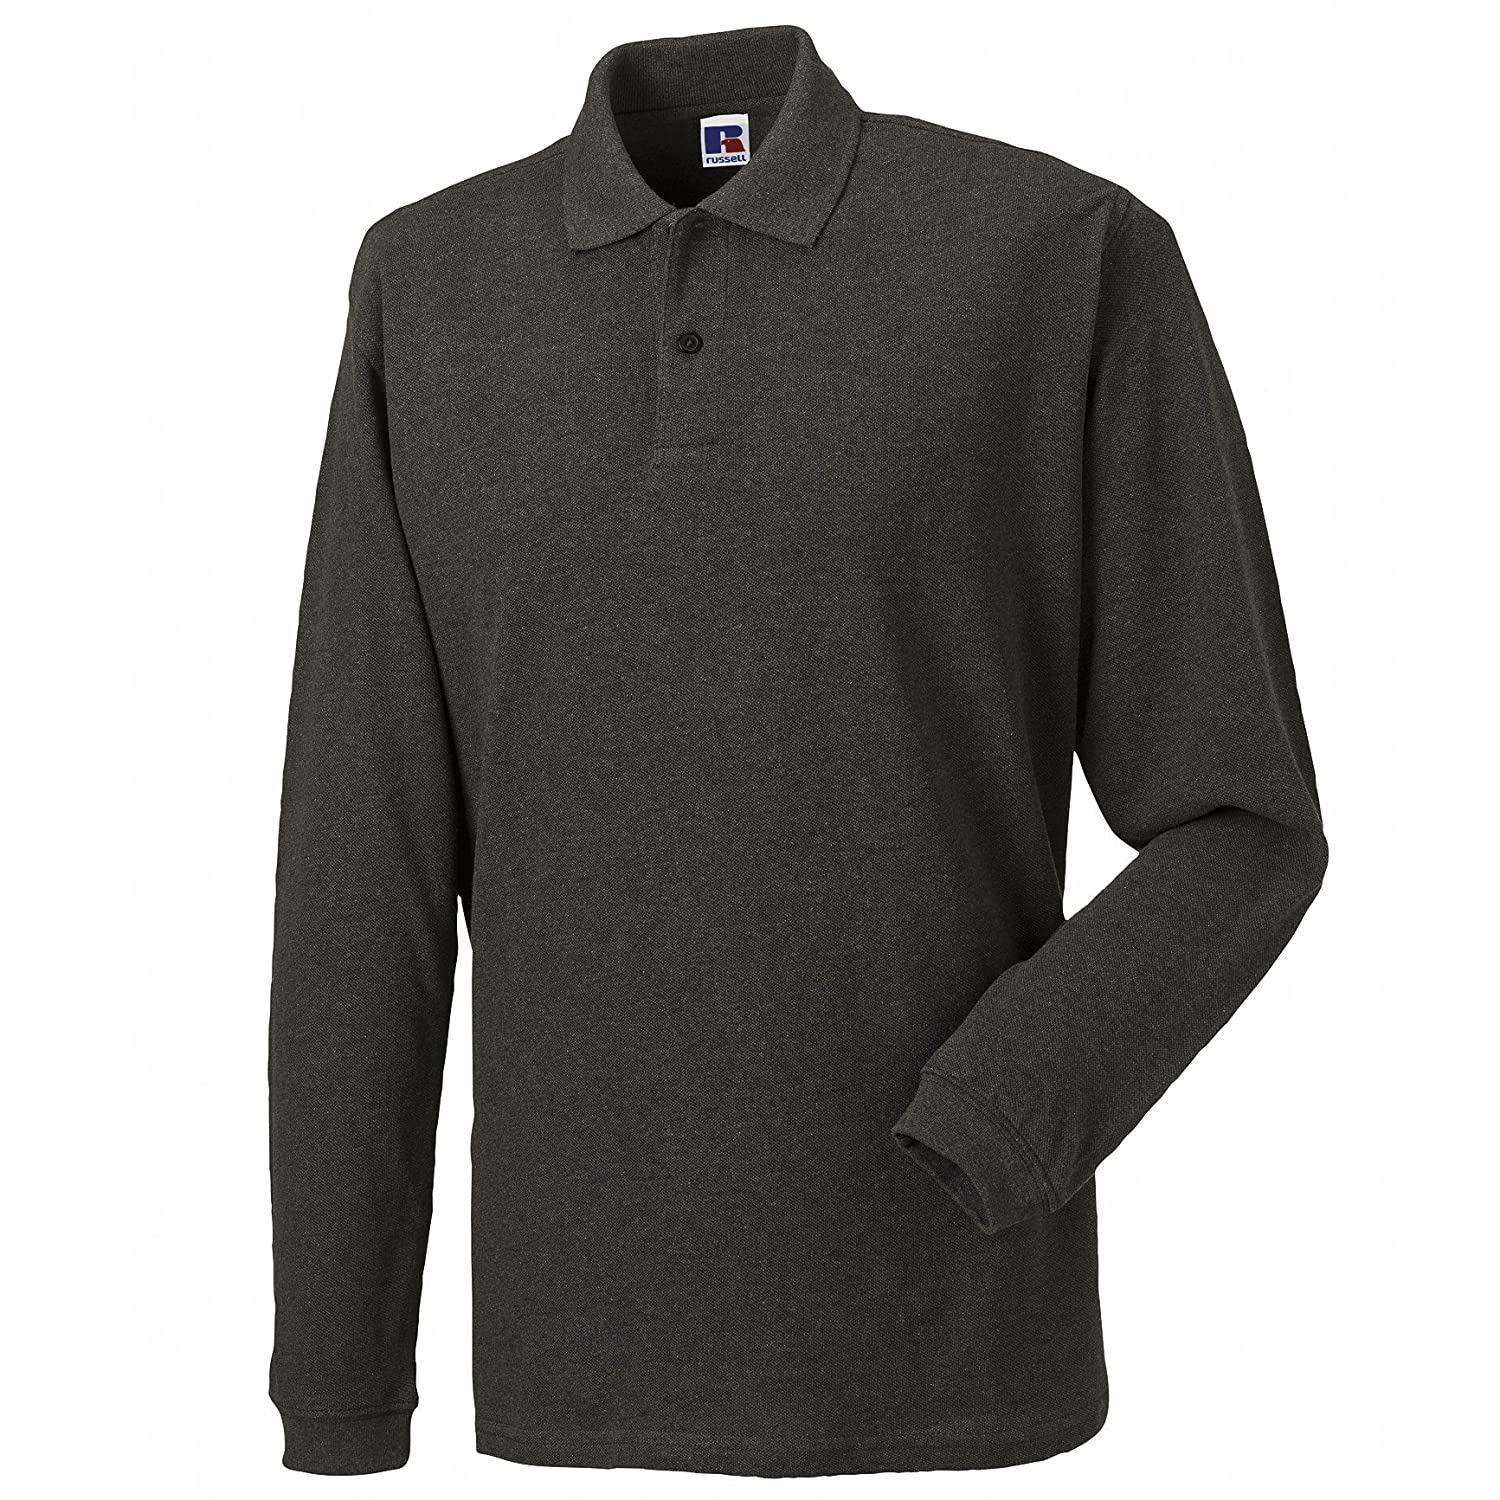 Russell Europe Mens Long Sleeve Classic Cotton Polo Shirt